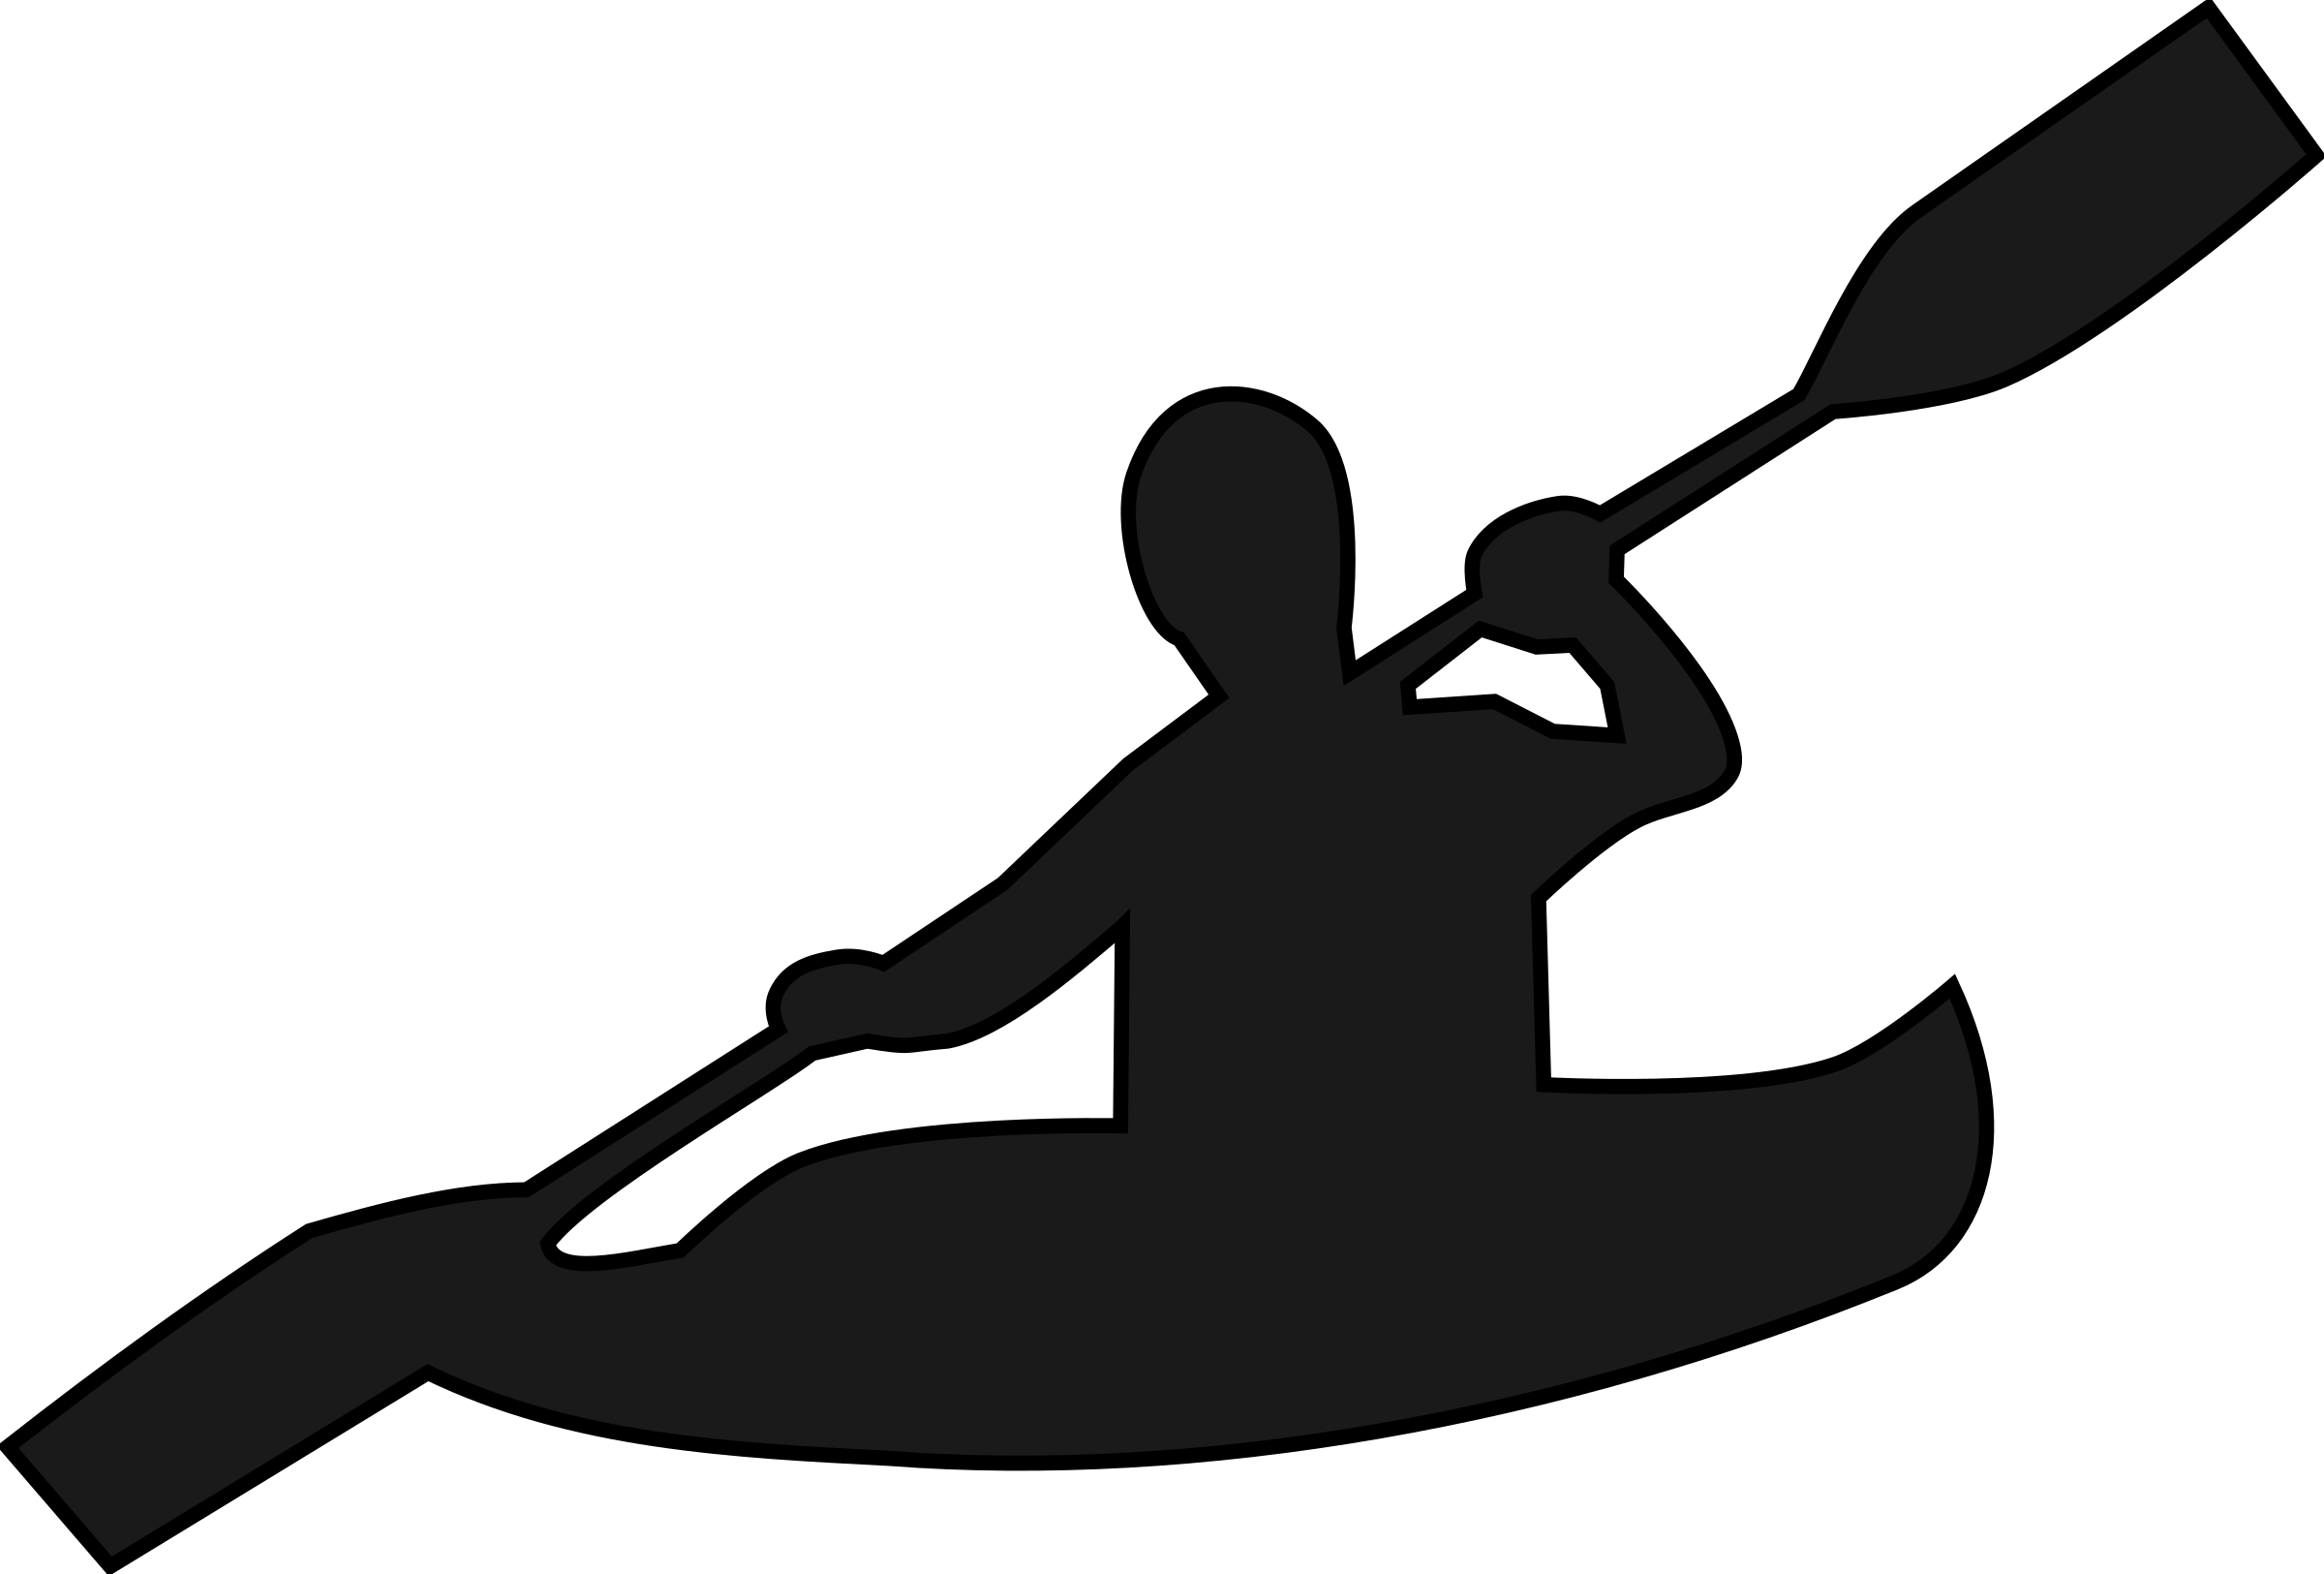 Free canoeing cliparts download. Kayaking clipart line kayak picture library stock